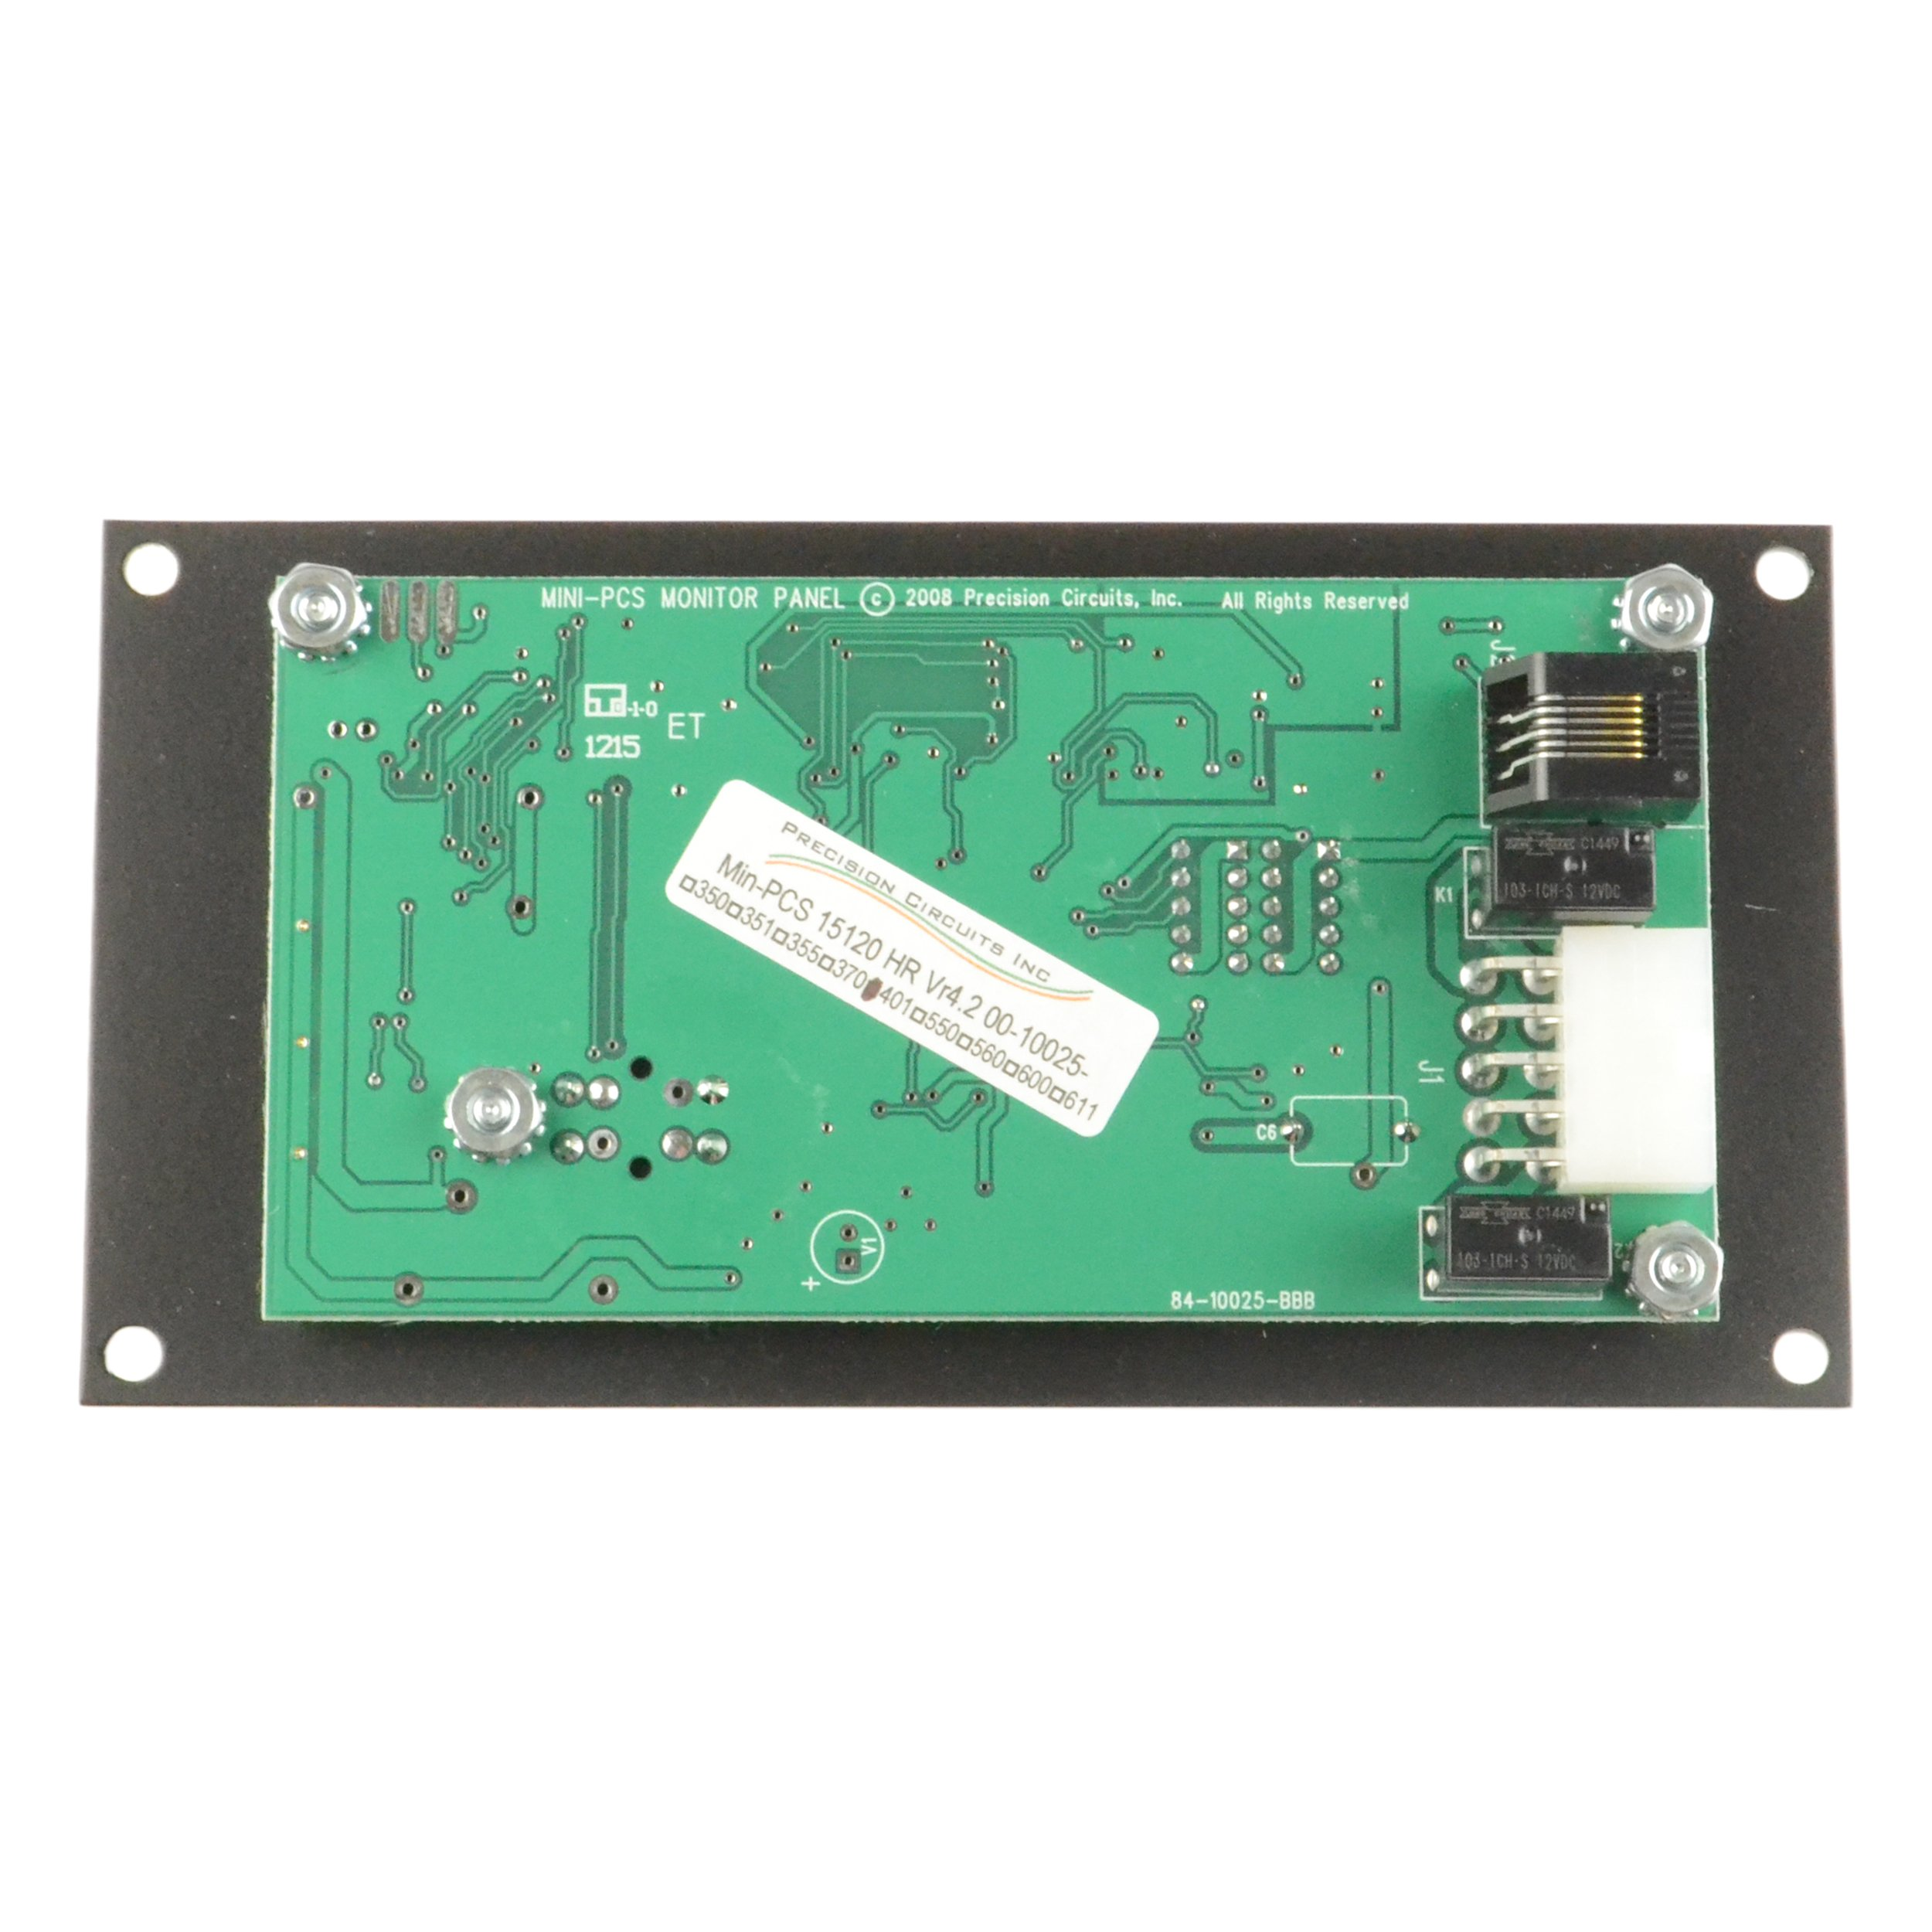 Precision Circuits 00-10025-401 Monitor Panel by Precision Circuits (Image #2)